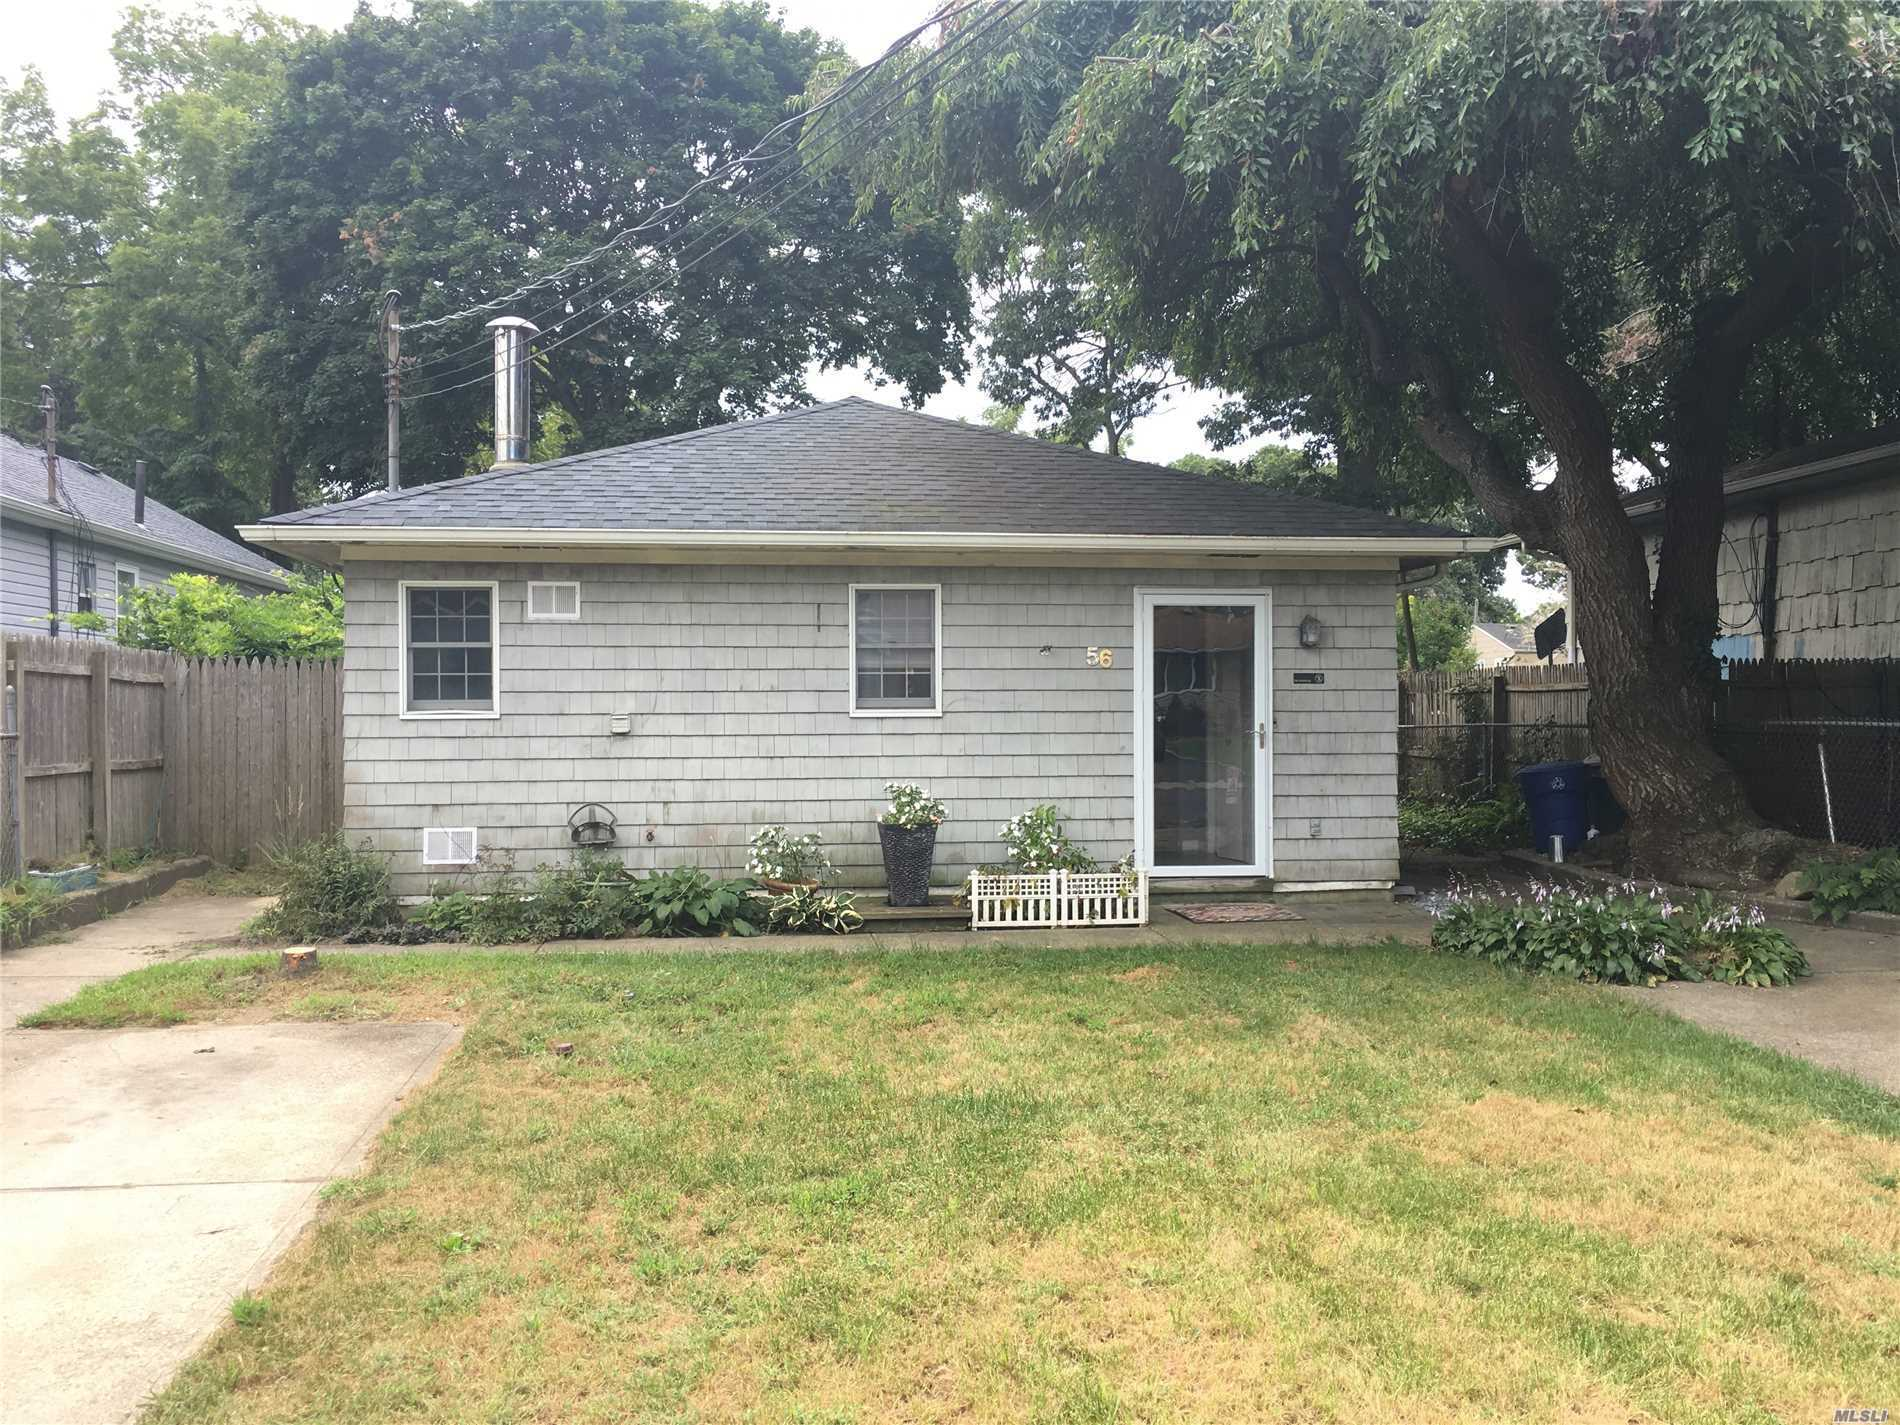 One Of Kind***Massive 3 Br 1400 Sq Ft Ranch***Former Mother Daughter-Duplex** Was Split As 2 Identical 1Br Units** (Mirror Image)= 3 Huge Rooms=kit, 1 Br, Lr, Bath Laundry. Both Ground Level W/No Stairs! Dual Driveway, Easy To Maintain Property Fenced*******->presently******Rooms 3 Br = 2 King Size Bedrooms Dbl Closets, Full/Twin Size Br With Own Bath, Kitchen, Giant Formal Dinning Room, Huge Living Room, 2 Baths **Dividing Wall Is Now Door Way Ties It All Together- New Roof 2010 New Boiler 2016